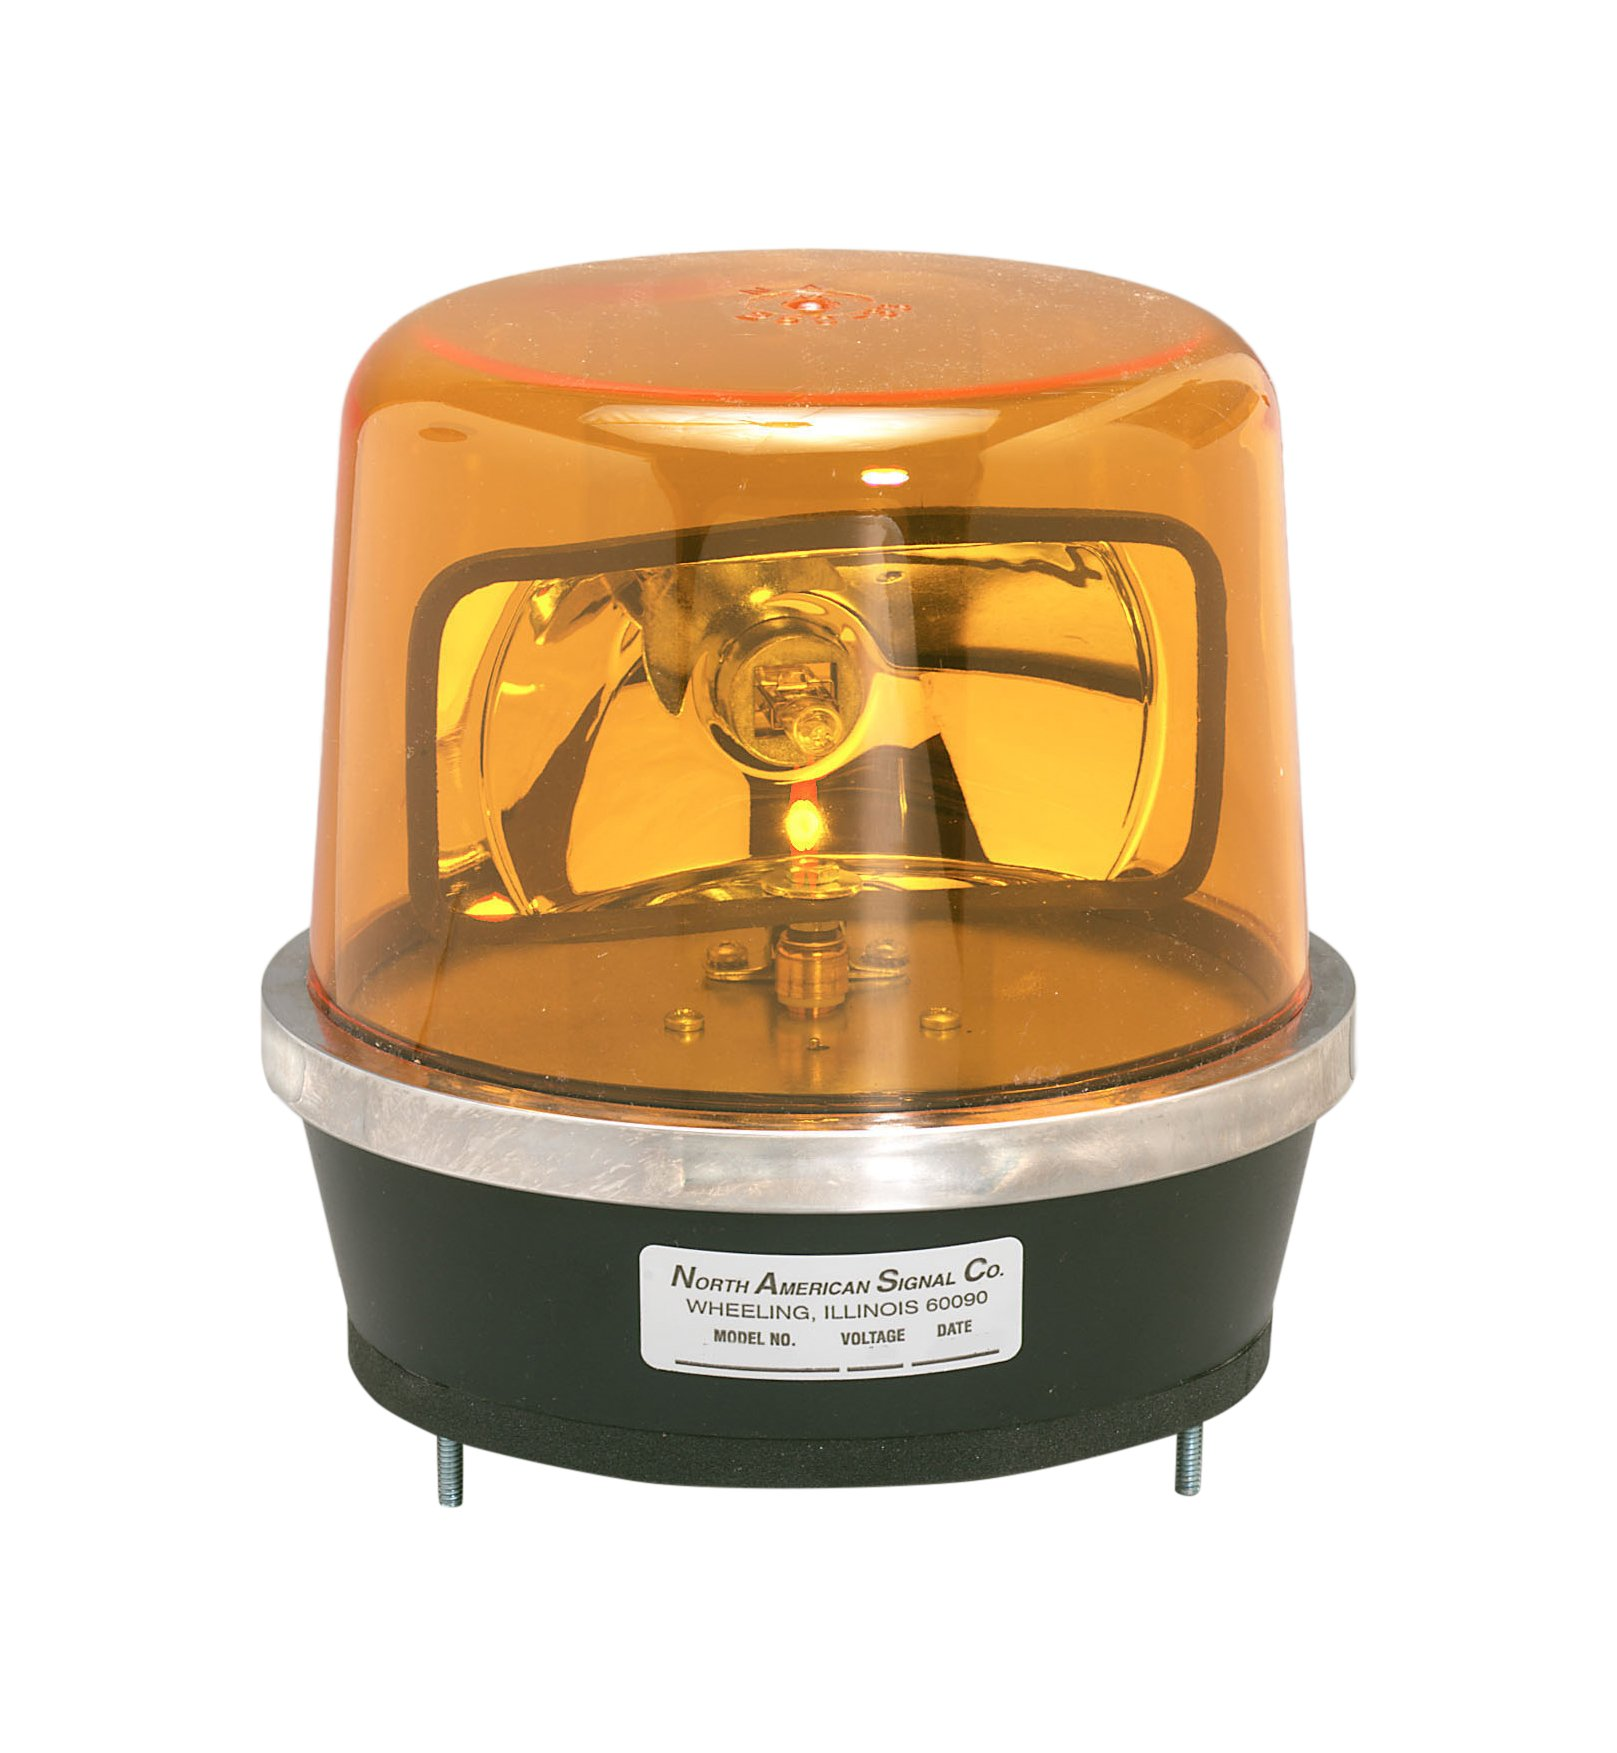 North American Signal 112HR-24A Halogen Rotating Beacon, Permanent Mount, Amber